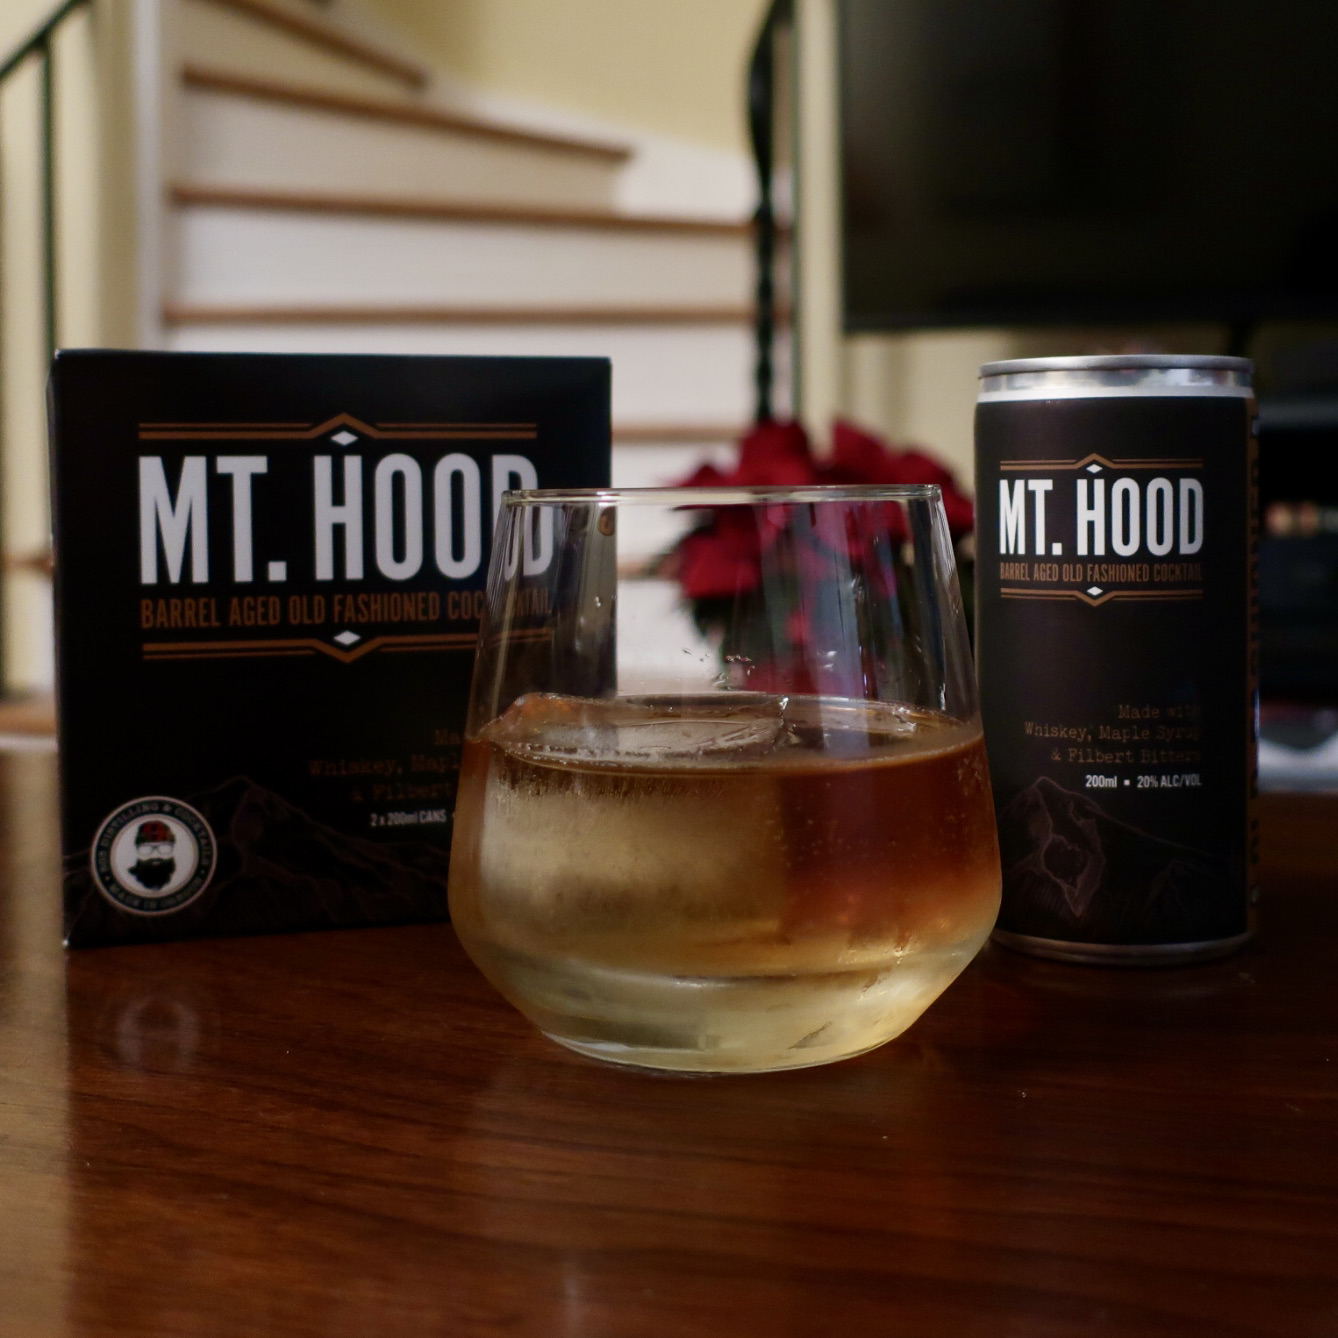 Mt. Hood Old Fashioned from 503 Distilling